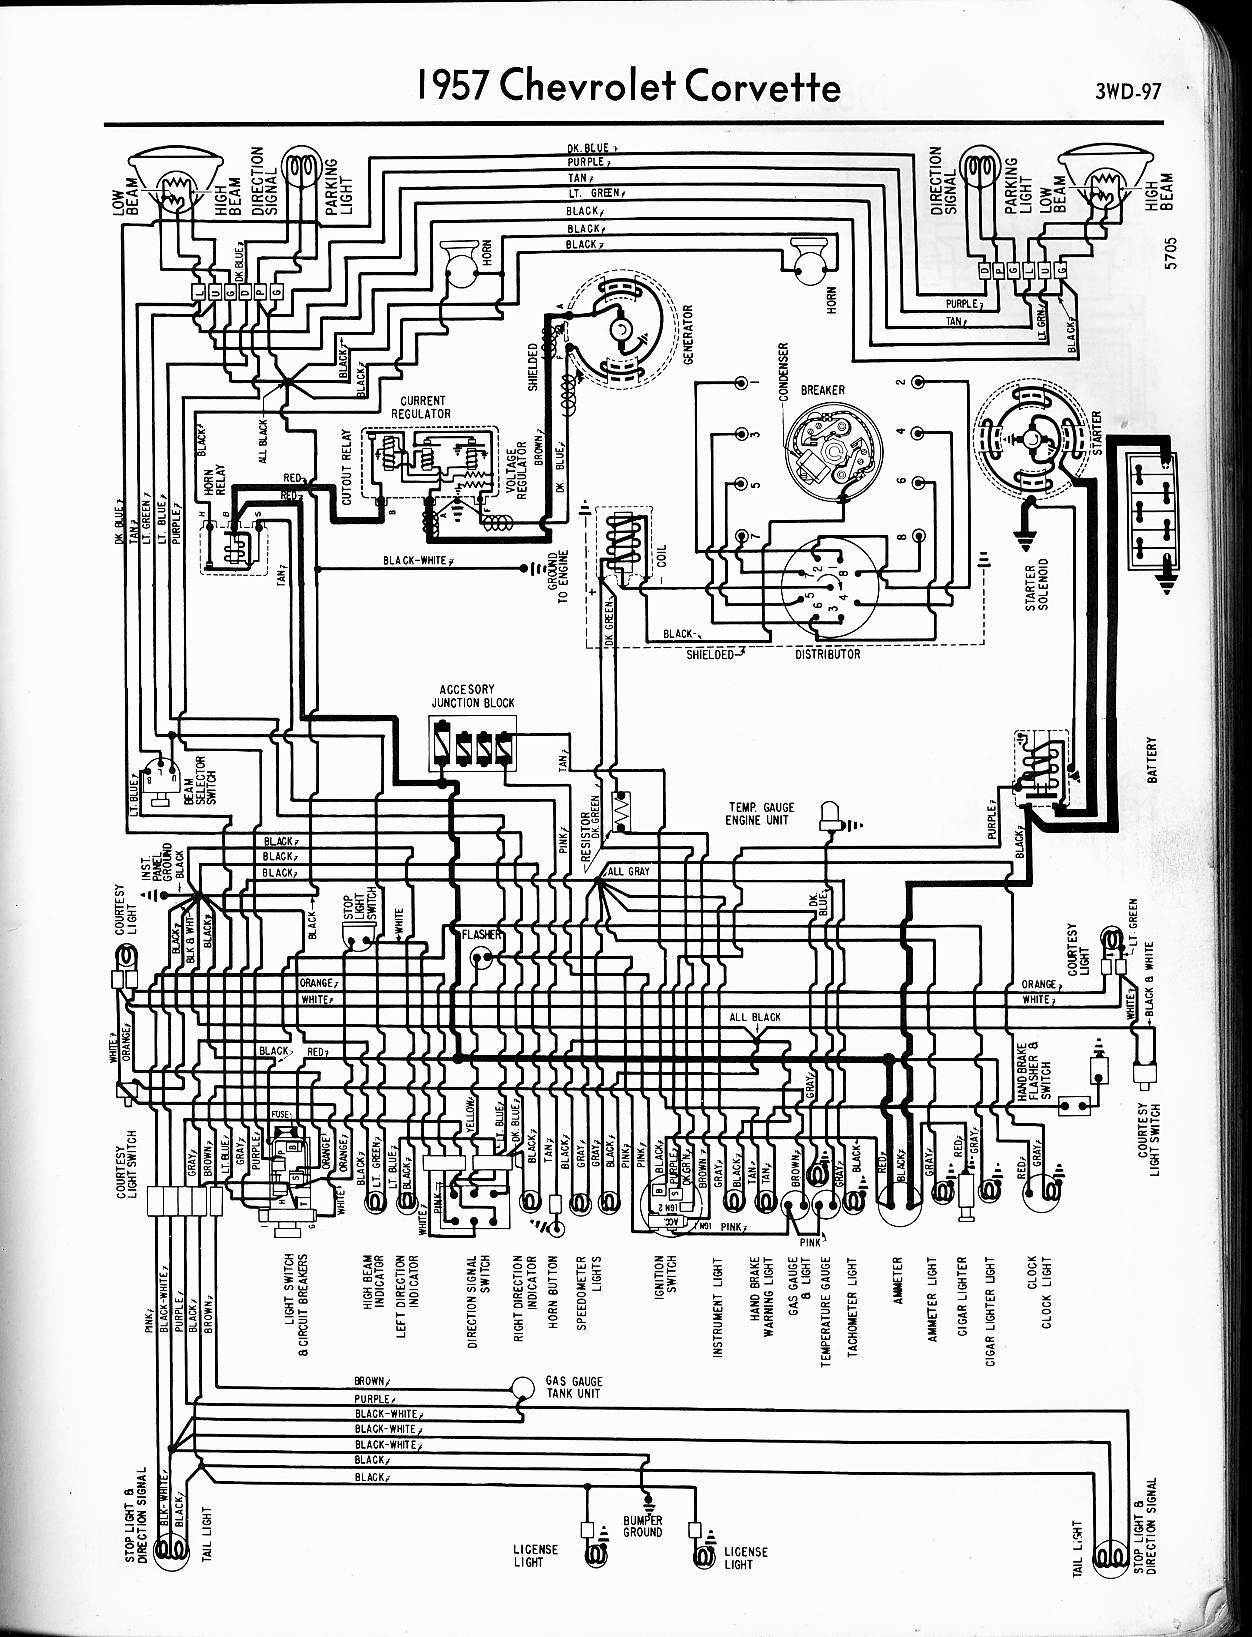 MWireChev57_3WD 097 57 65 chevy wiring diagrams 1960 corvette wiring diagram at aneh.co